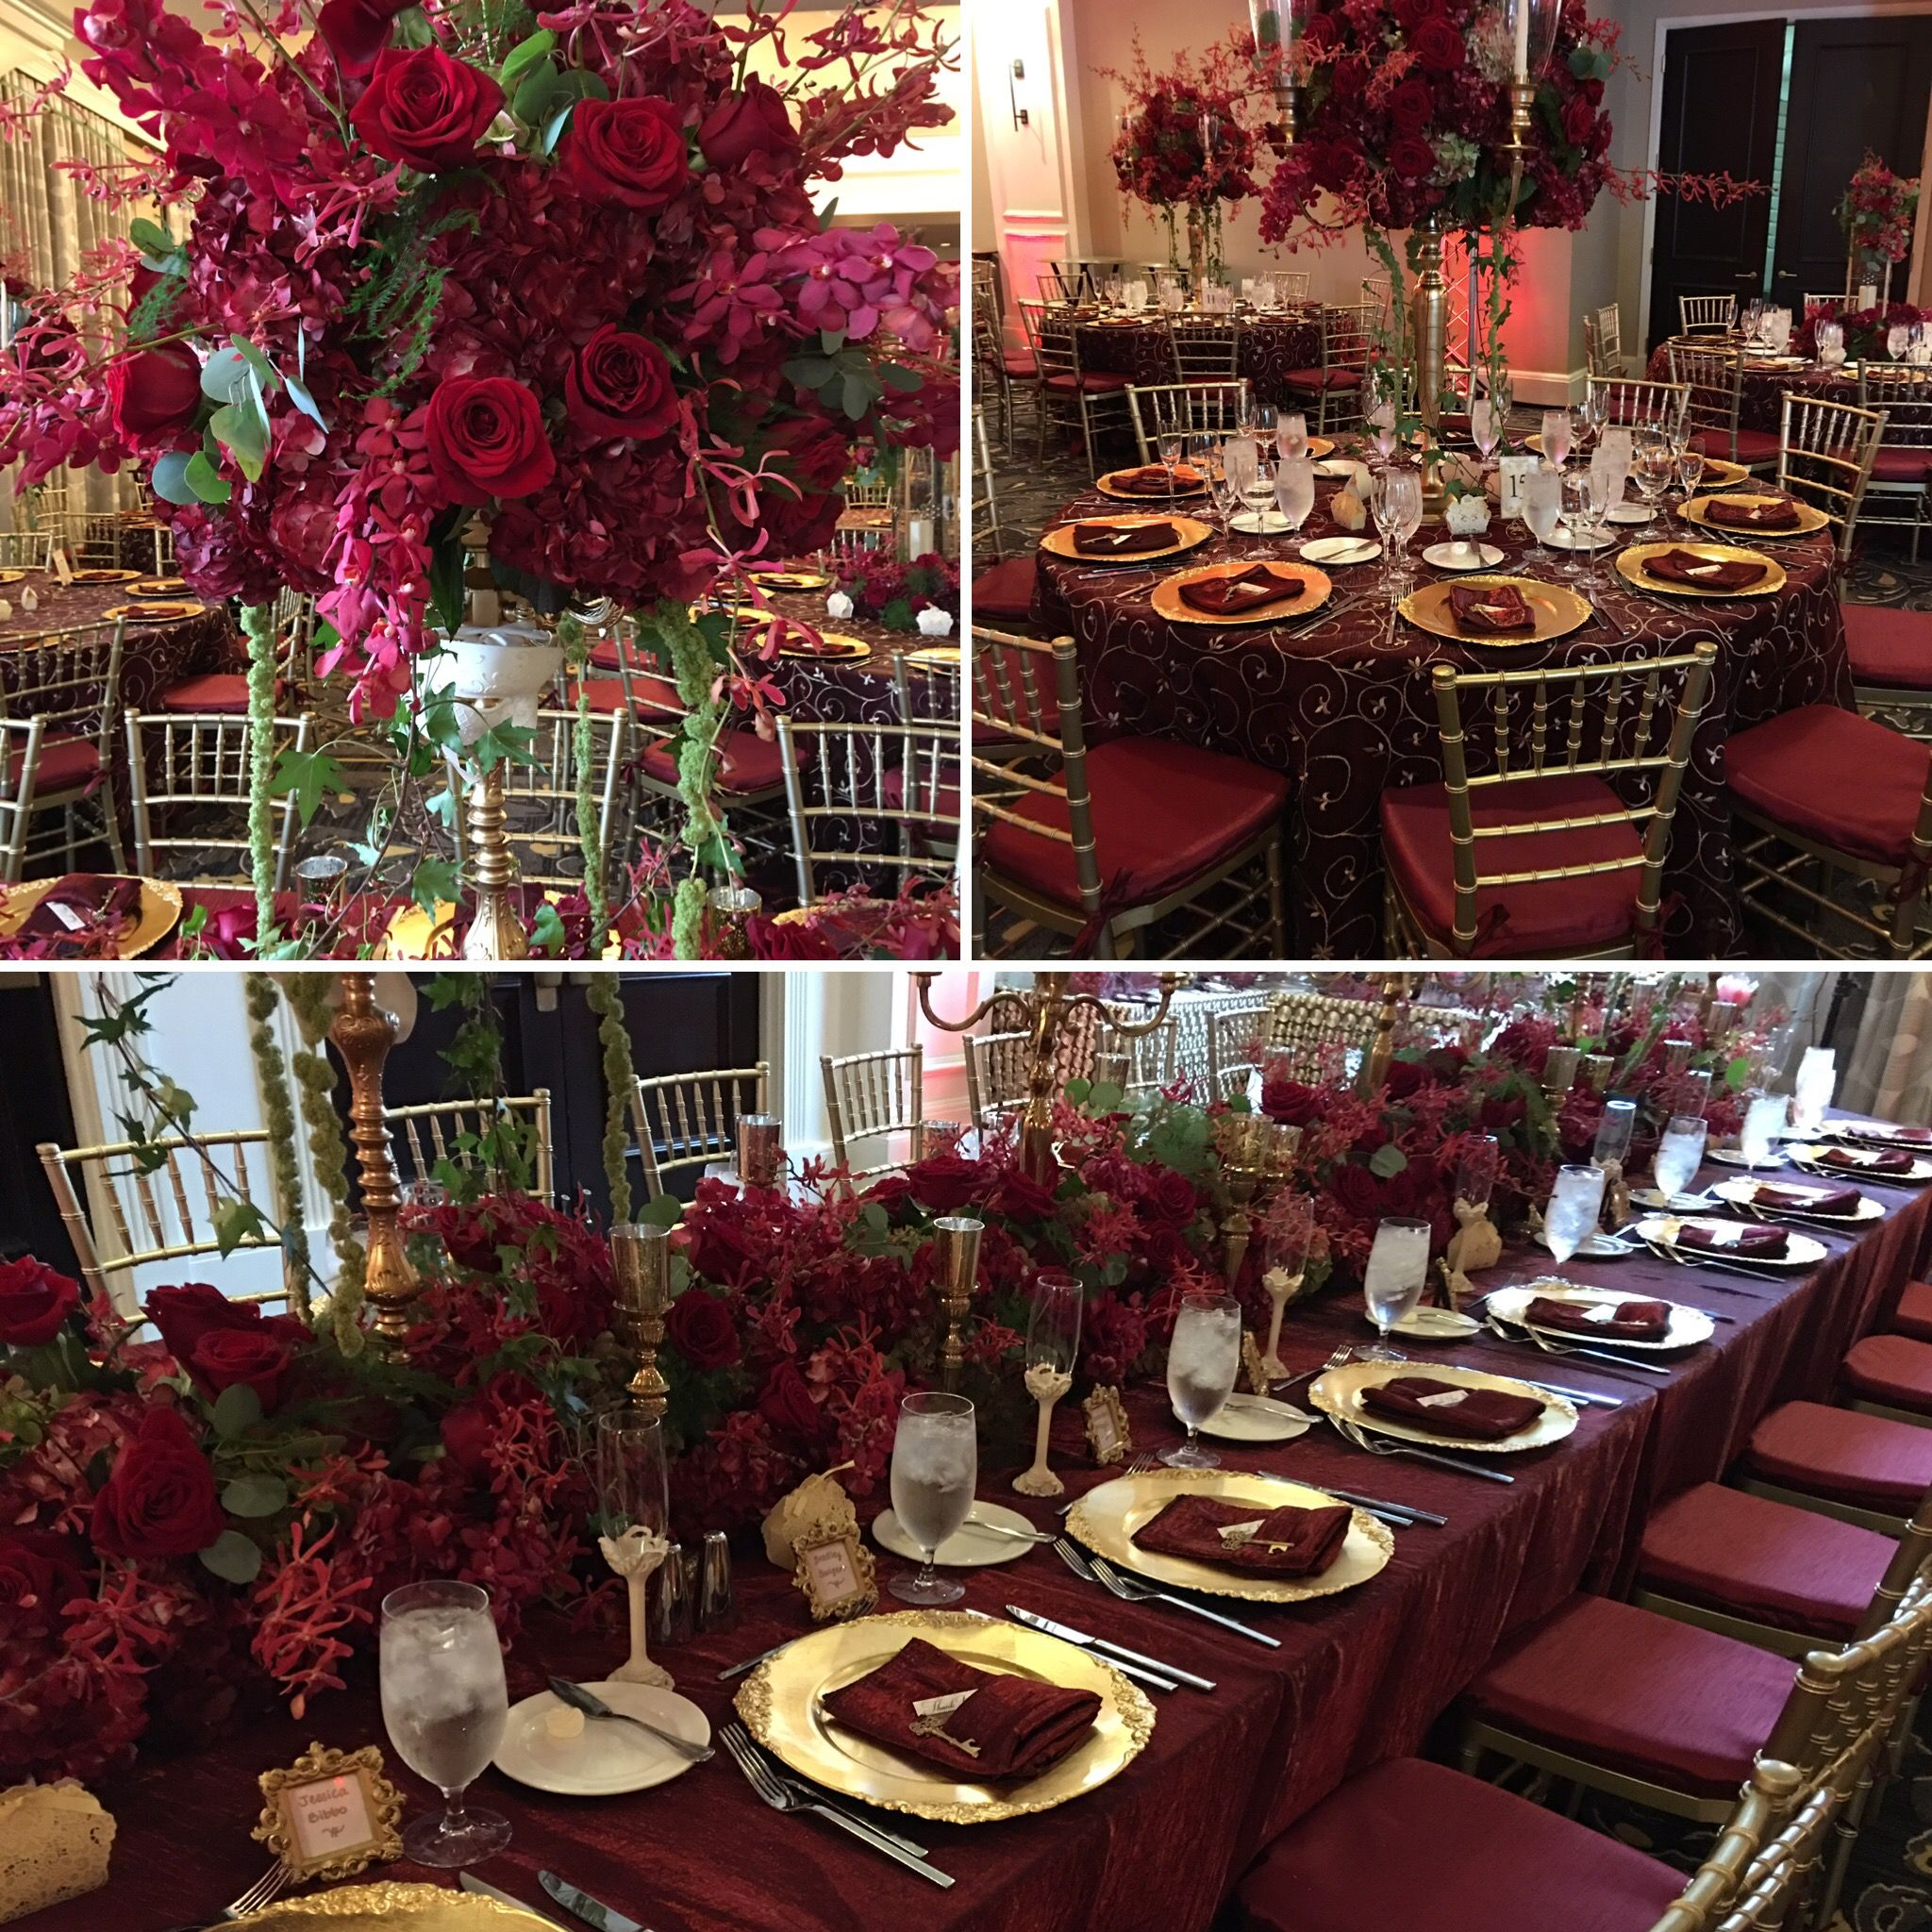 Simple Gold Wedding Decorations: Burgundy Floral Decor For A Phantom Theme Bridal Or Quince